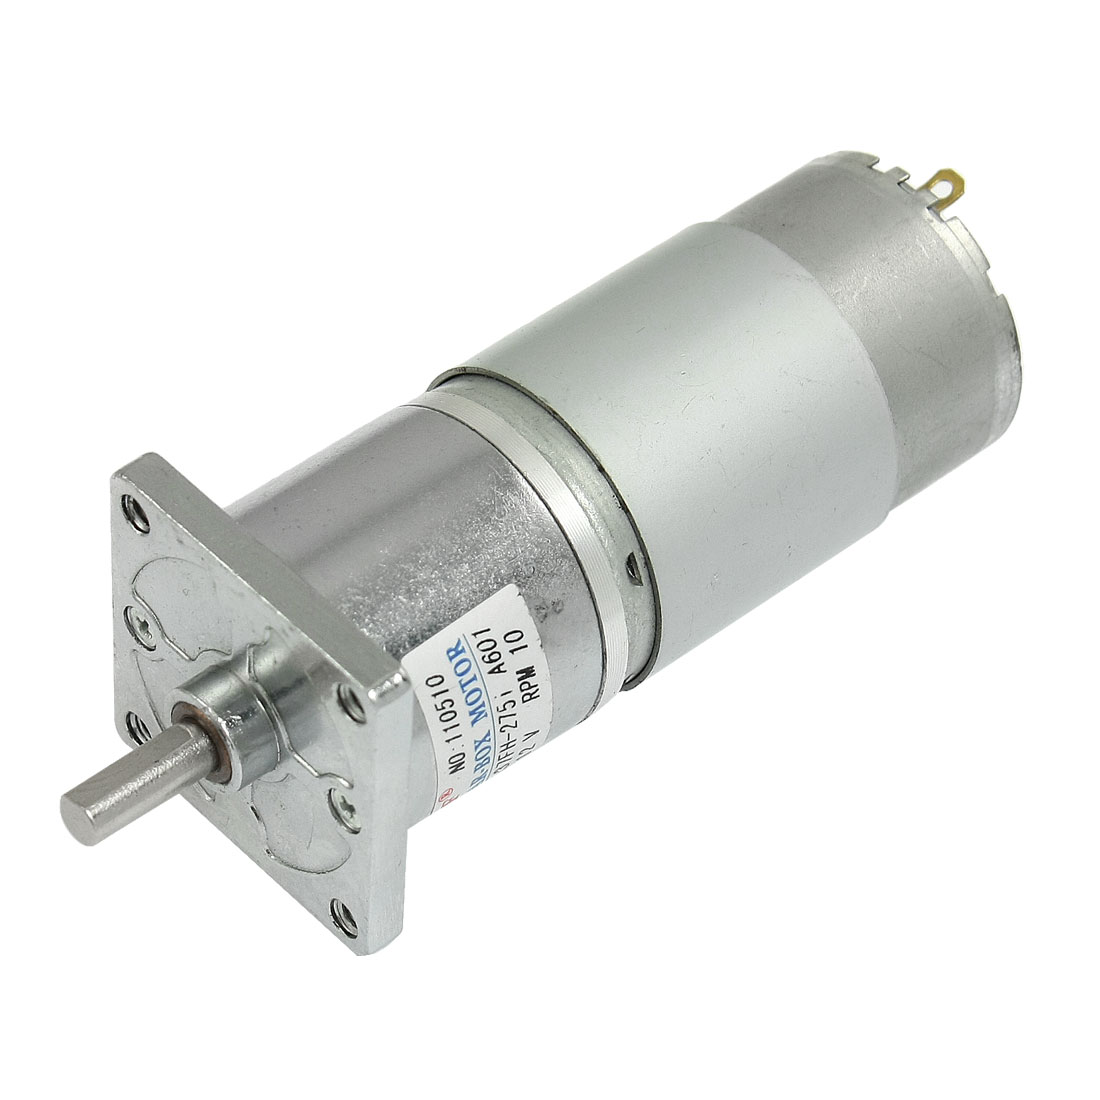 20-9Kg-cm-Torque-6mm-Shaft-37mm-Dia-Magnetic-DC-Geared-Motor-10RPM-150mA-12V